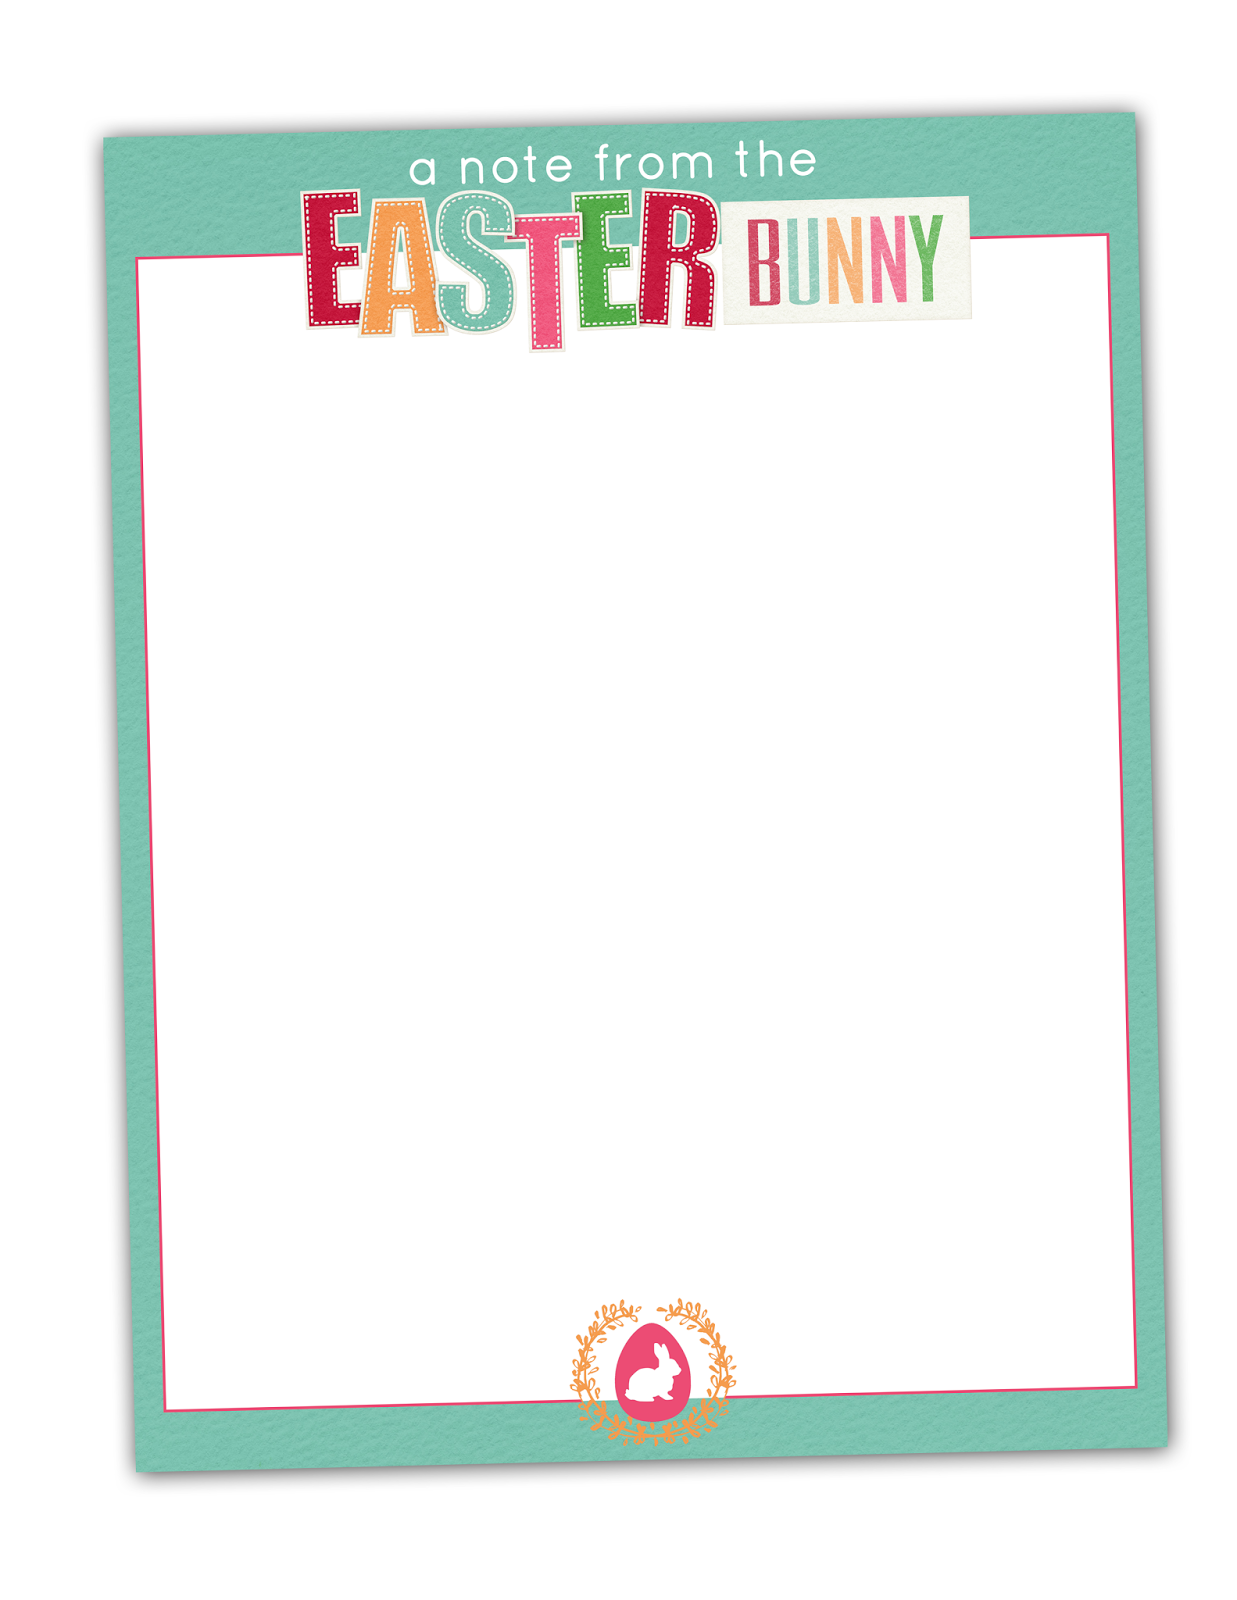 Bunny stationary militaryalicious bunny stationary spiritdancerdesigns Choice Image